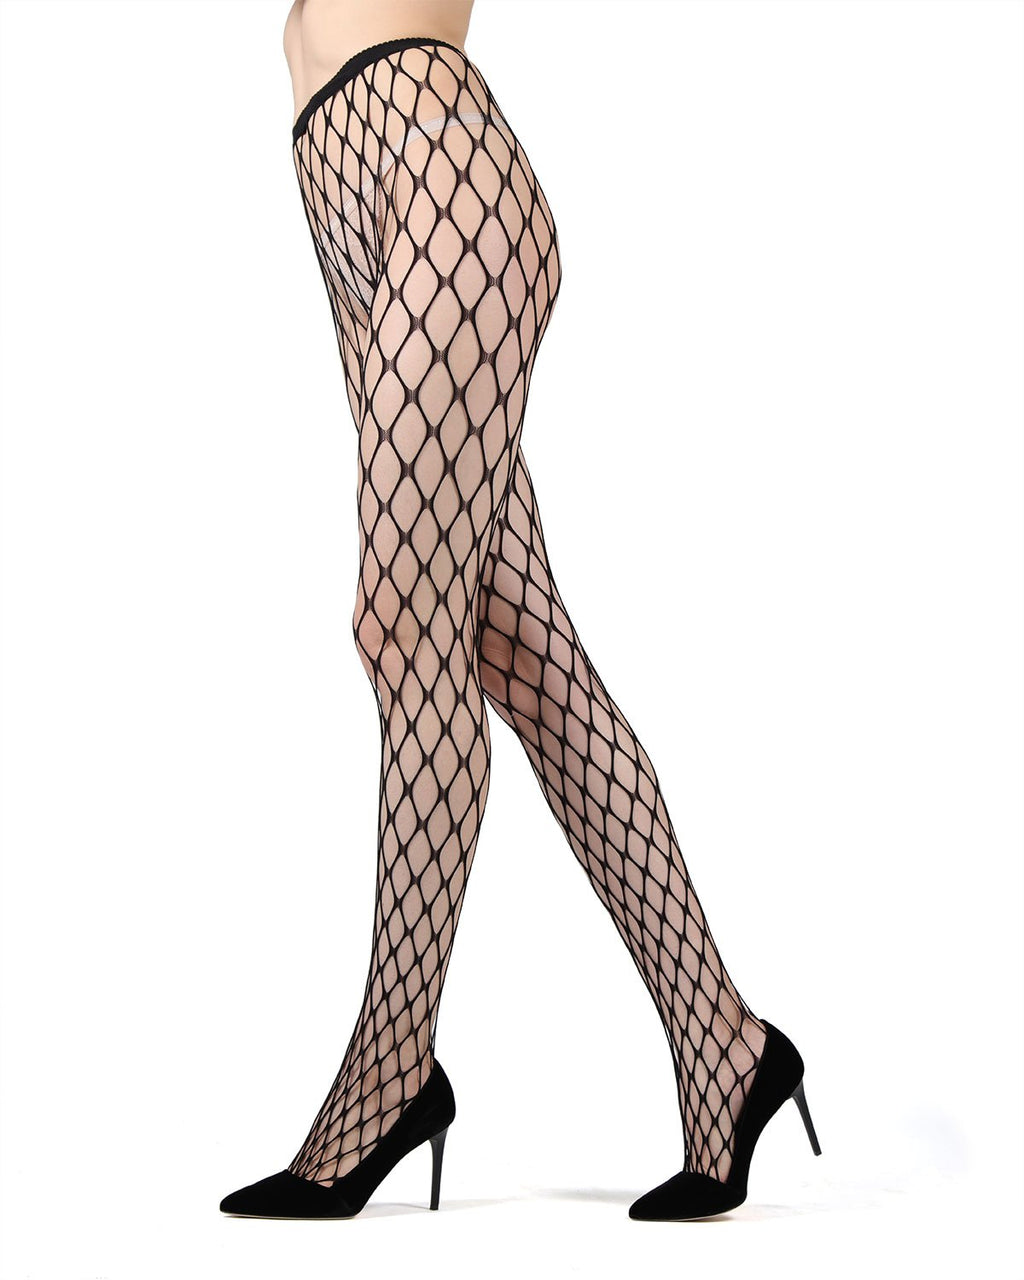 MeMoi | Black Maxi Net Fishnet Tights | Women's Tights